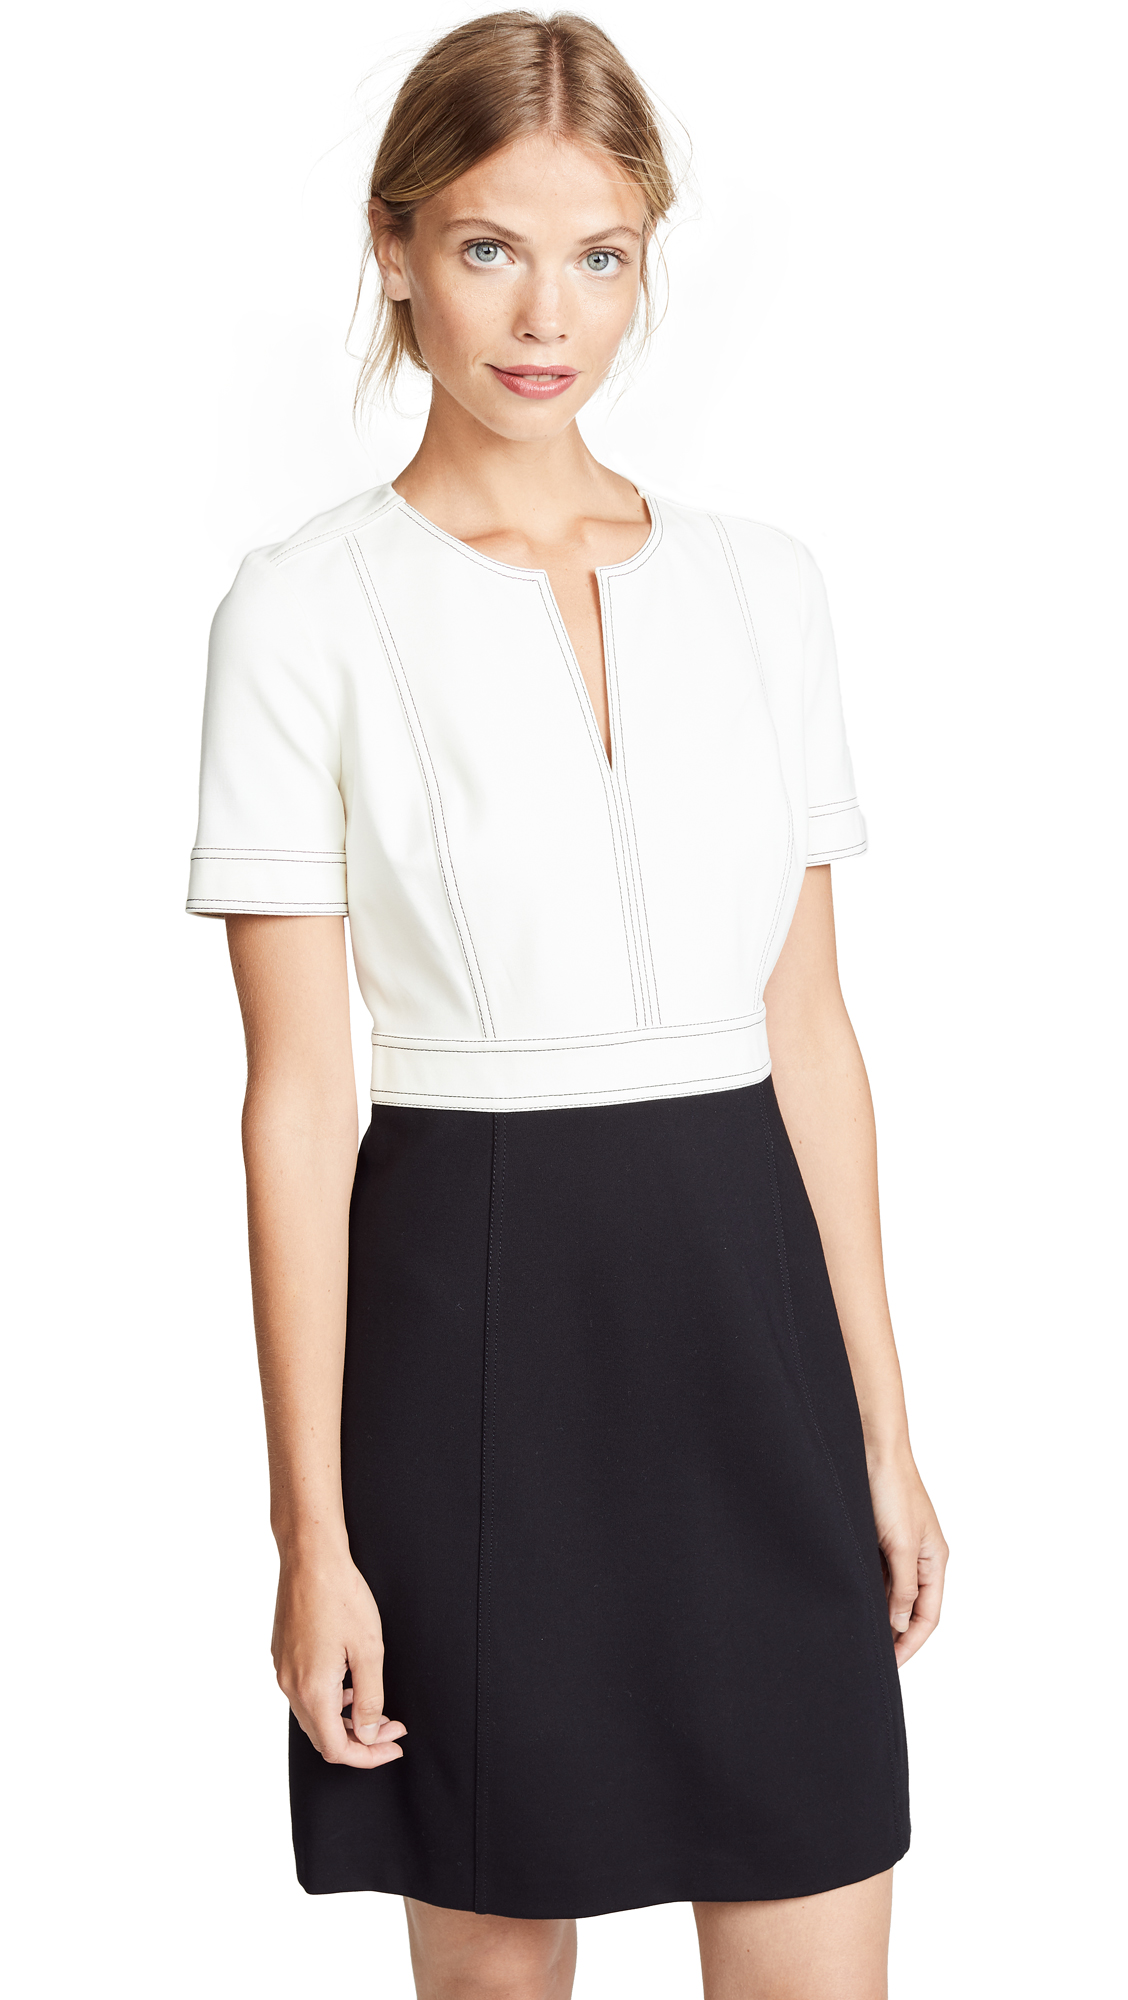 Tory Burch Allie Dress - New Ivory